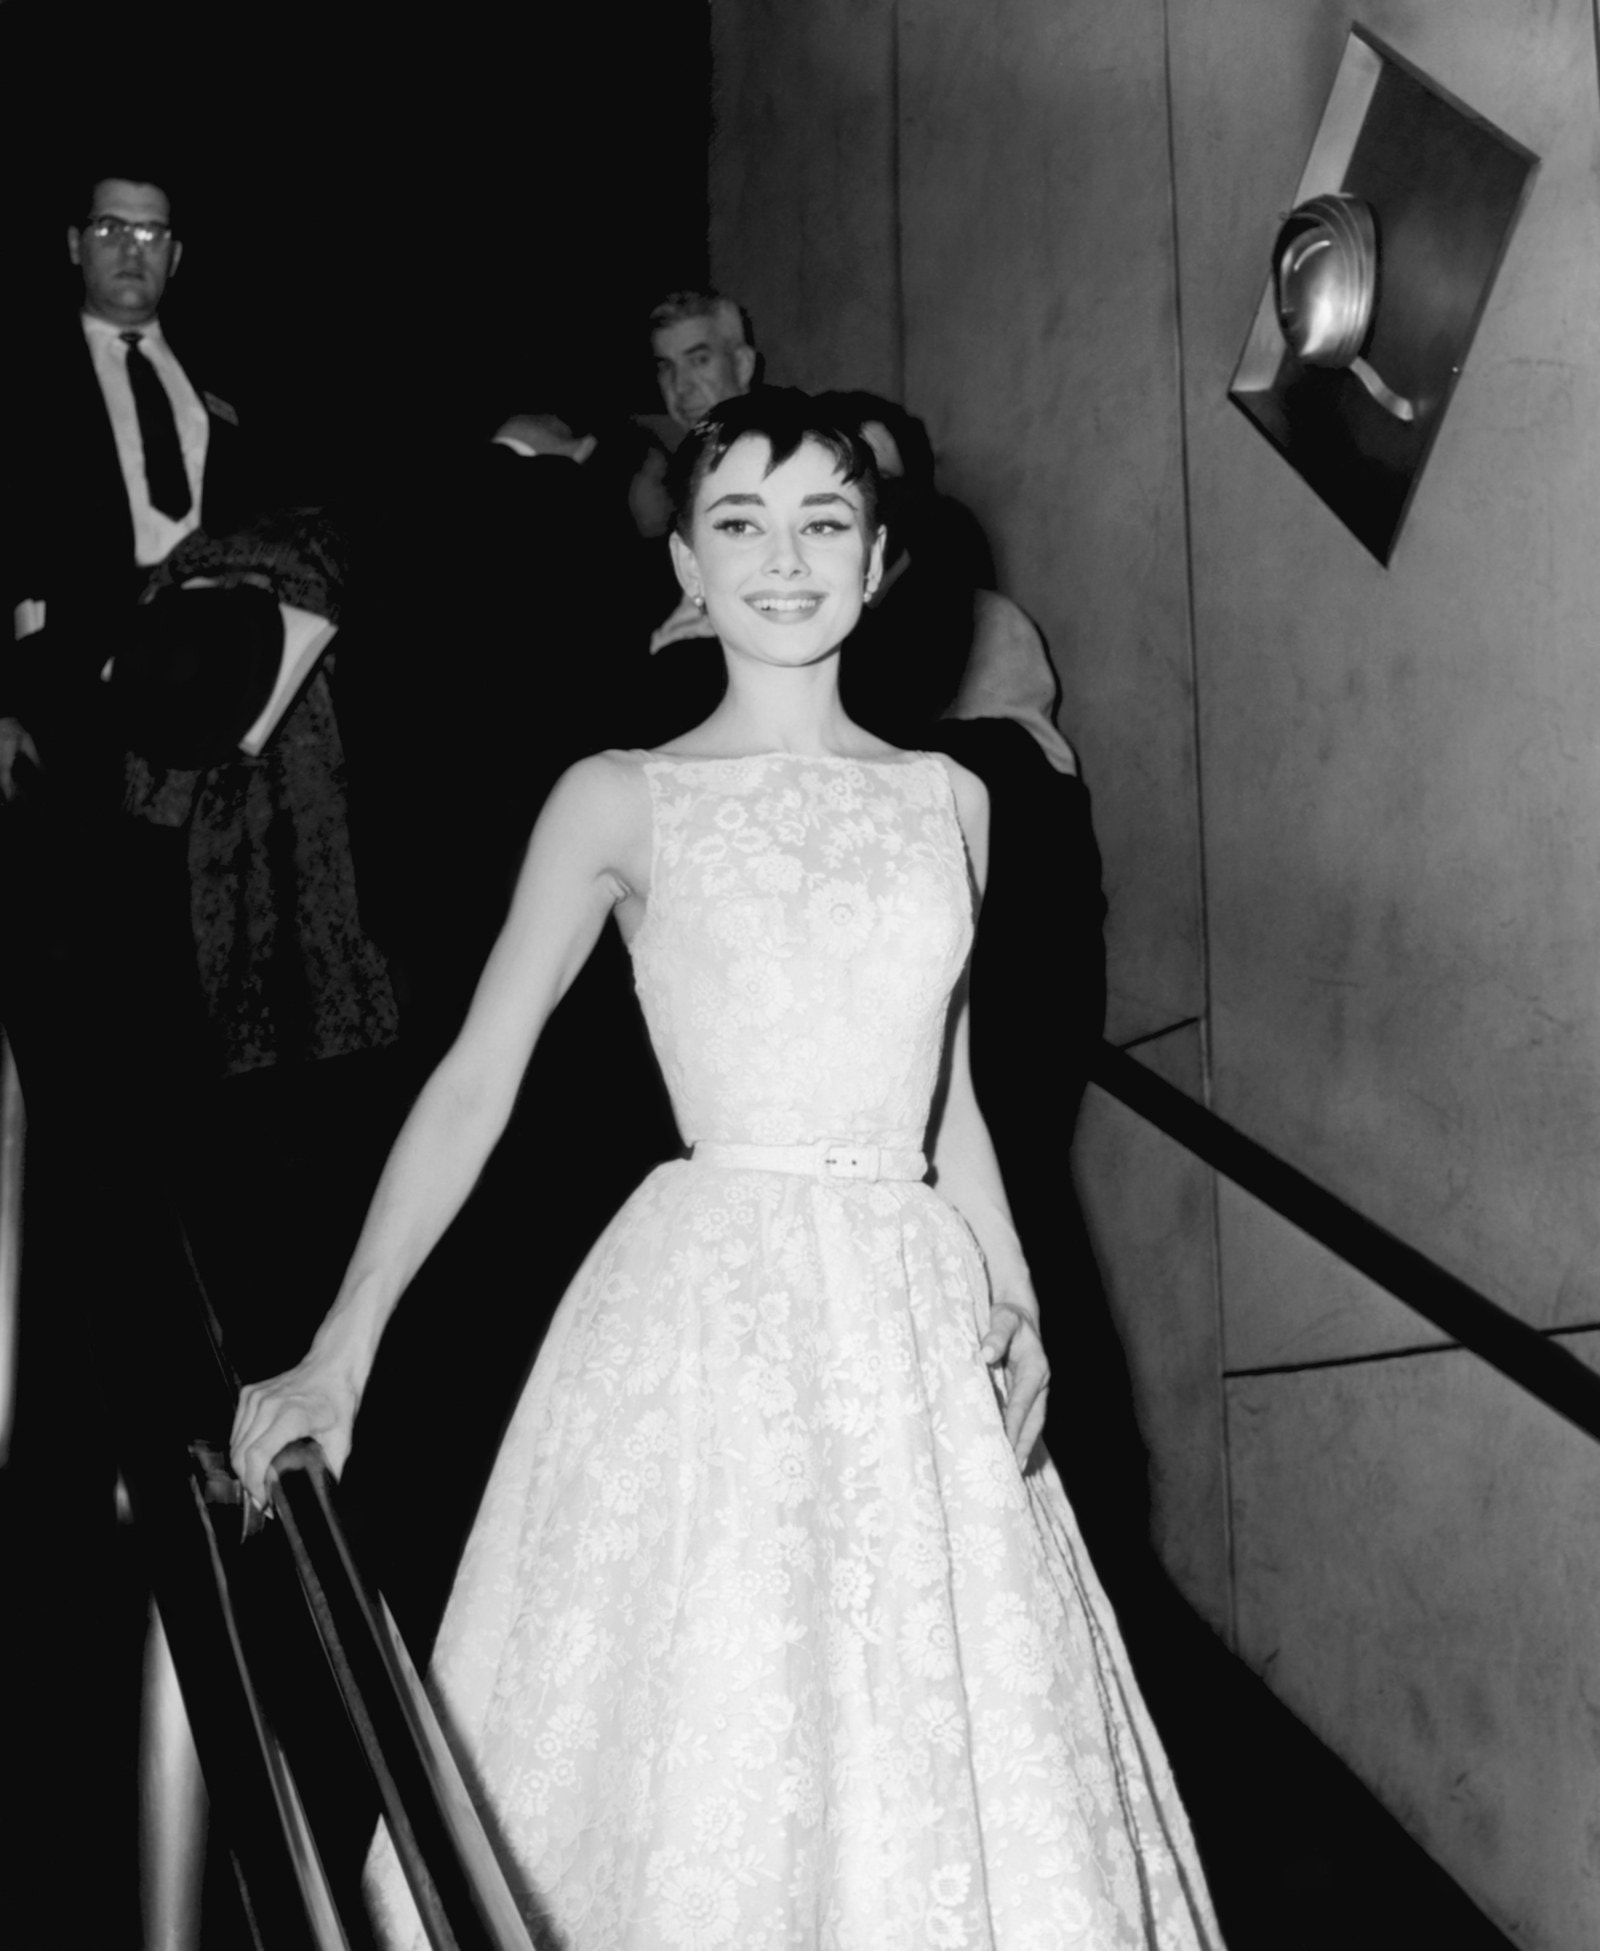 Audrey Hepburn style Audrey Hepburn wears a white lace dress at the 26th Academy Awards